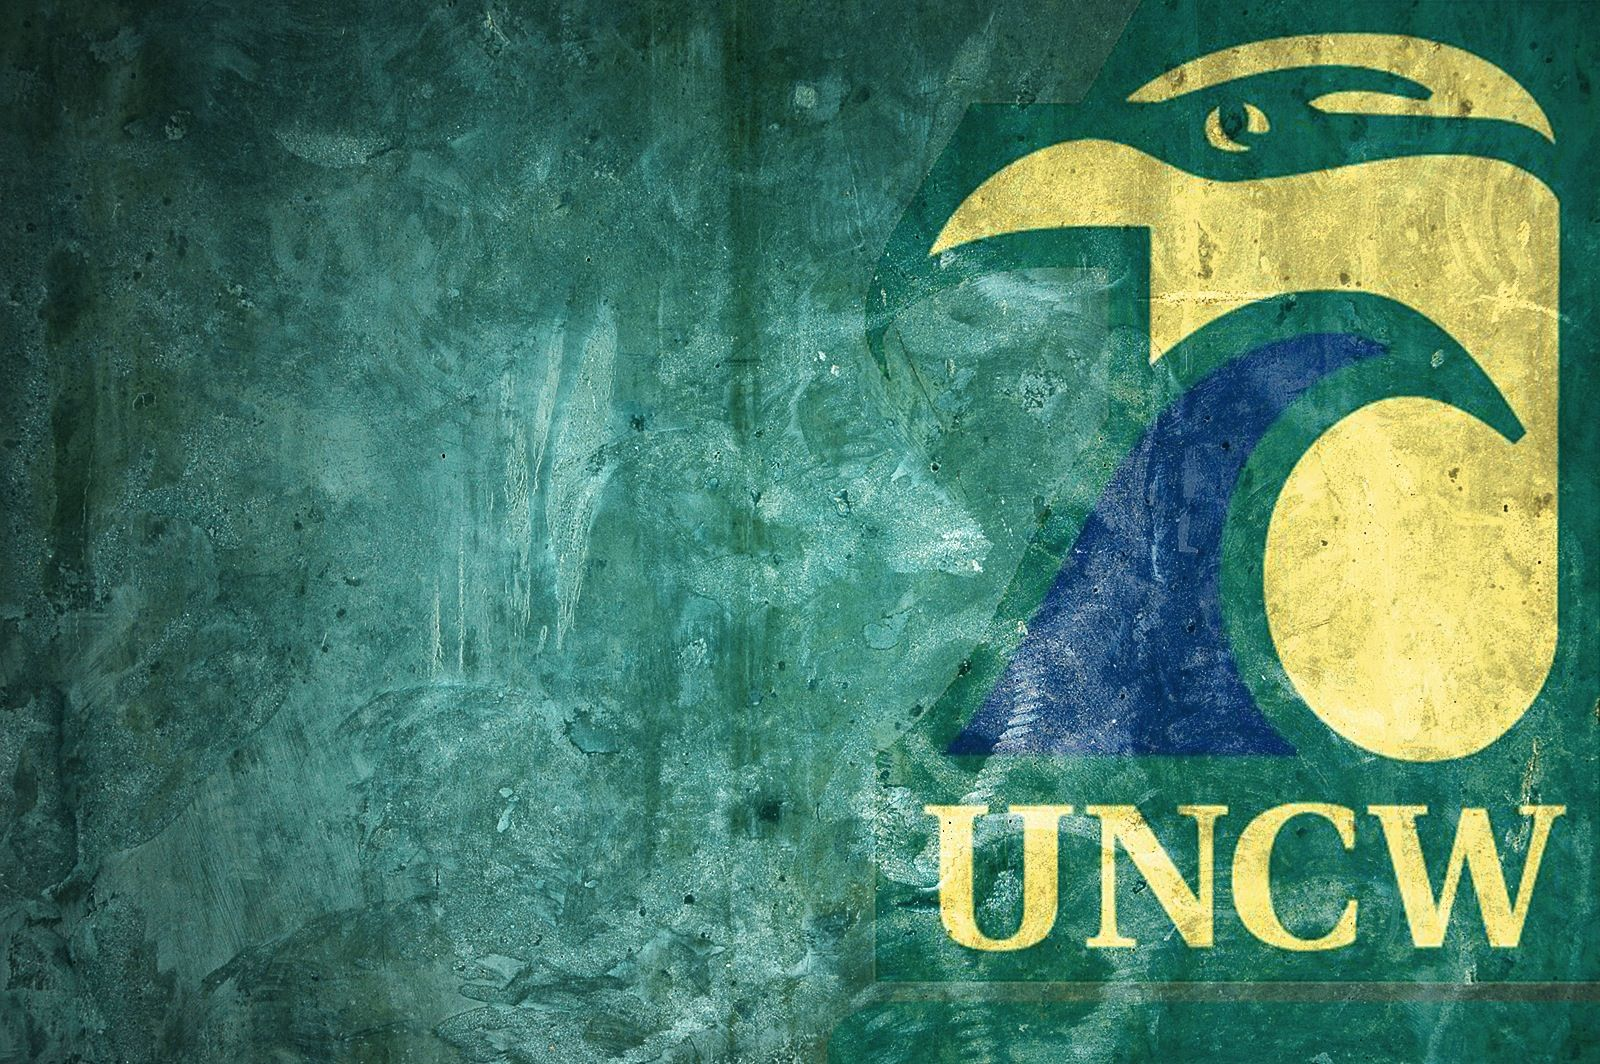 We chose to dedicate this #Wallpaper #Wednesday to #UNCW to welcome back all the students and faculty starting classes today - Go Seahawks!